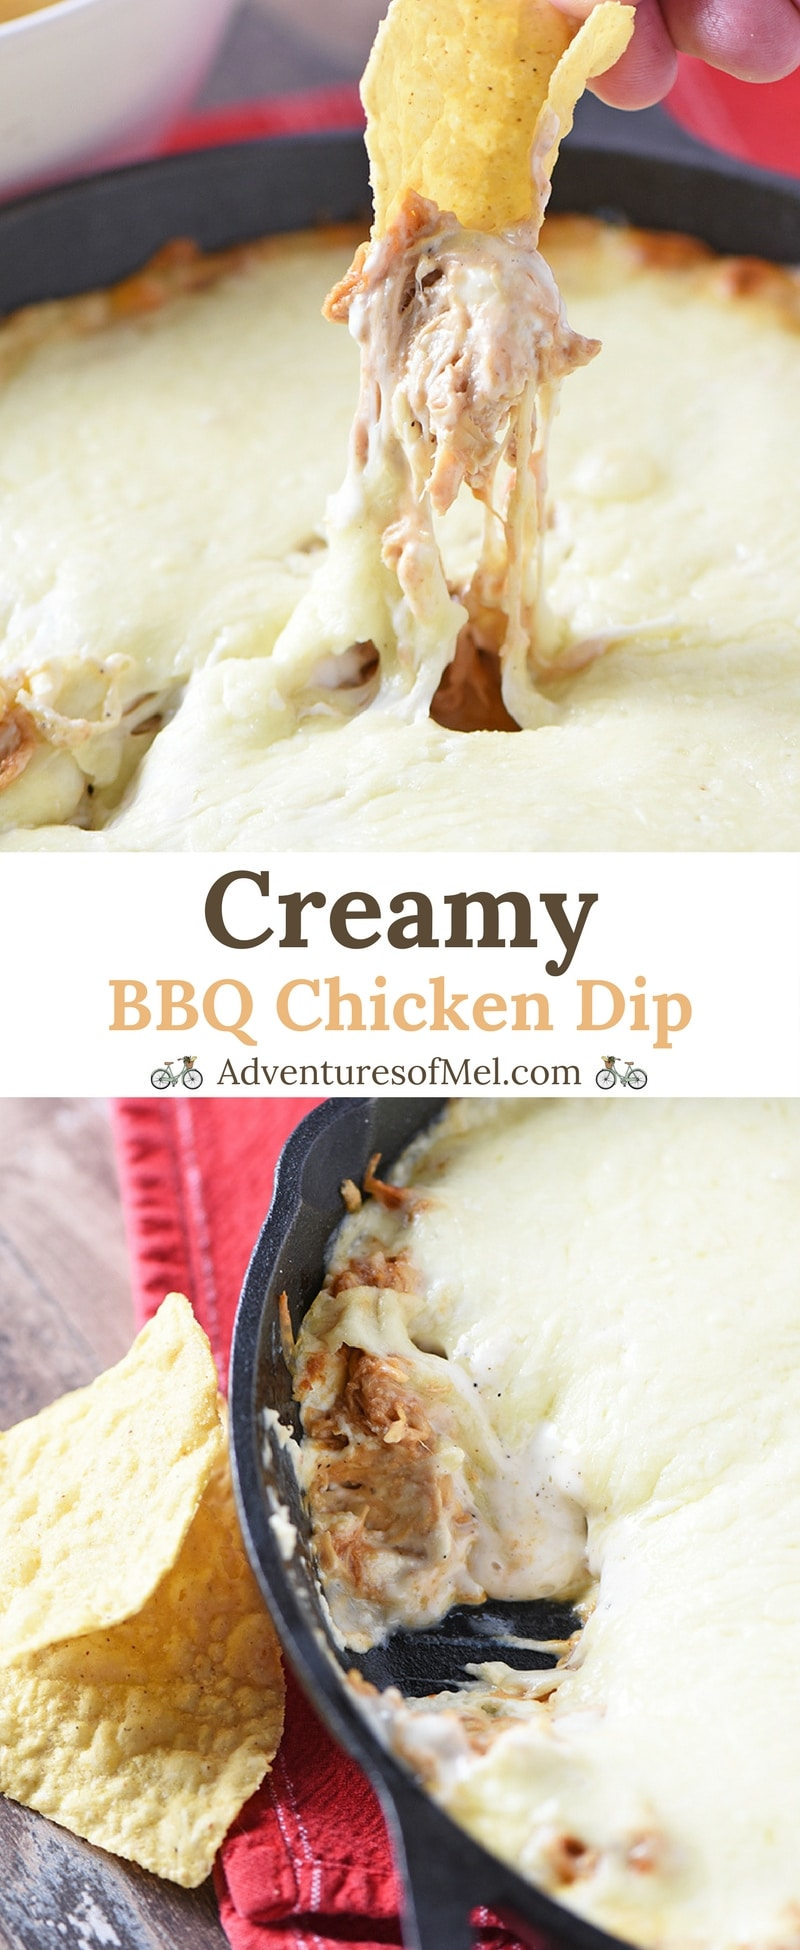 BBQ Chicken Dip, made with cream cheese, is an easy appetizer recipe. Pair it with tortilla chips for a delicious snack your friends and family will love!